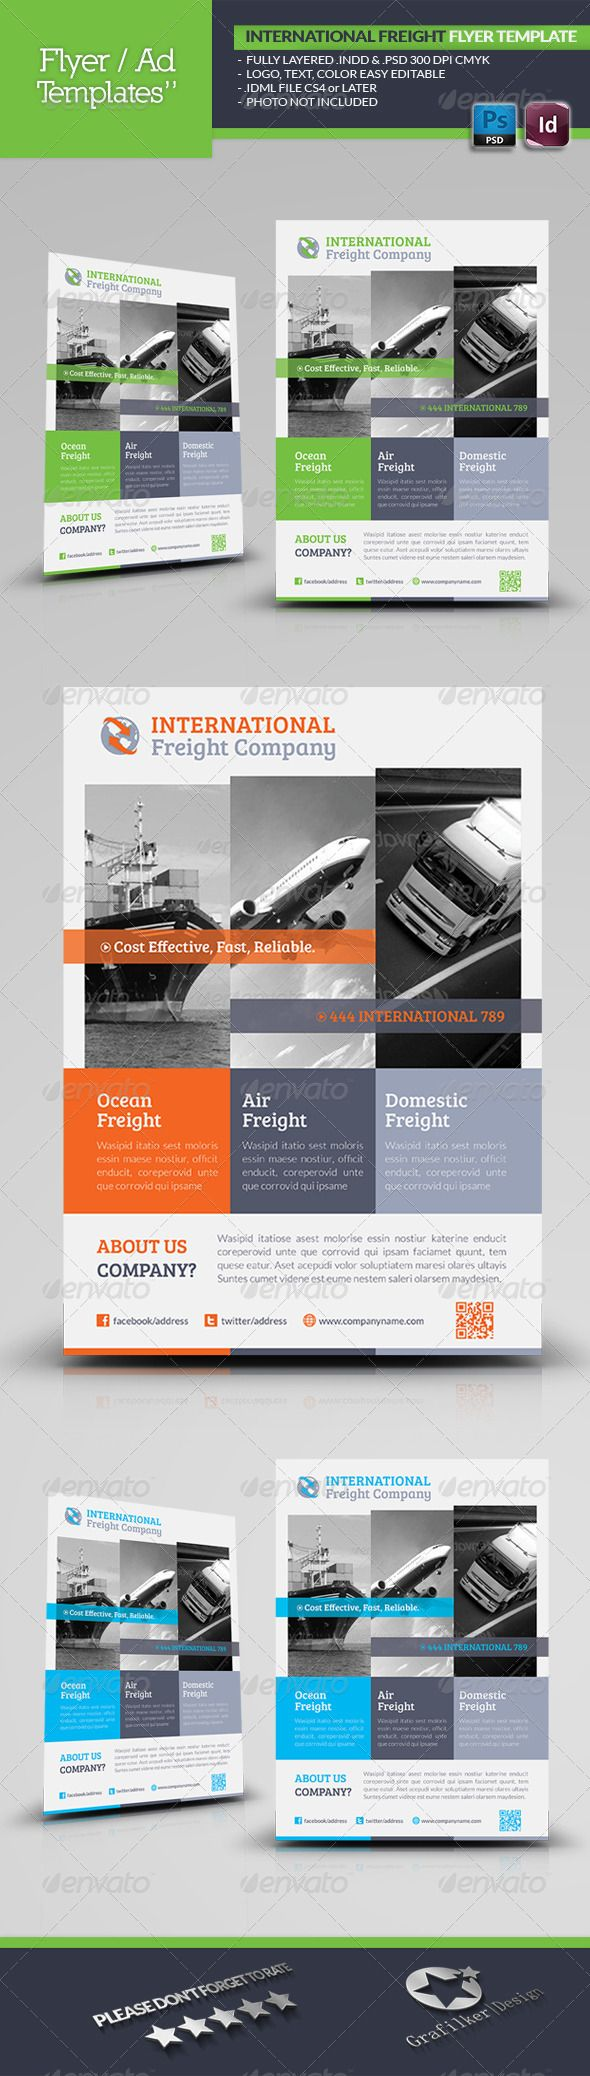 International Freight Flyer Template #GraphicRiver International Freight Flyer Template Fully layered INDD Fully layered PSD 300 Dpi, CMYK IDML format open Indesign CS4 or later Completely editable, print ready Text/Font or Color can be altered as needed All Image are in vector format, so can customise easily Photos are not included in the file Font File: Lato Font: .fontsquirrel /fonts/lato Bree-serif: .fontsquirrel /fonts/bree-serif Help.txt file Created: 5August13 GraphicsFilesIncluded…